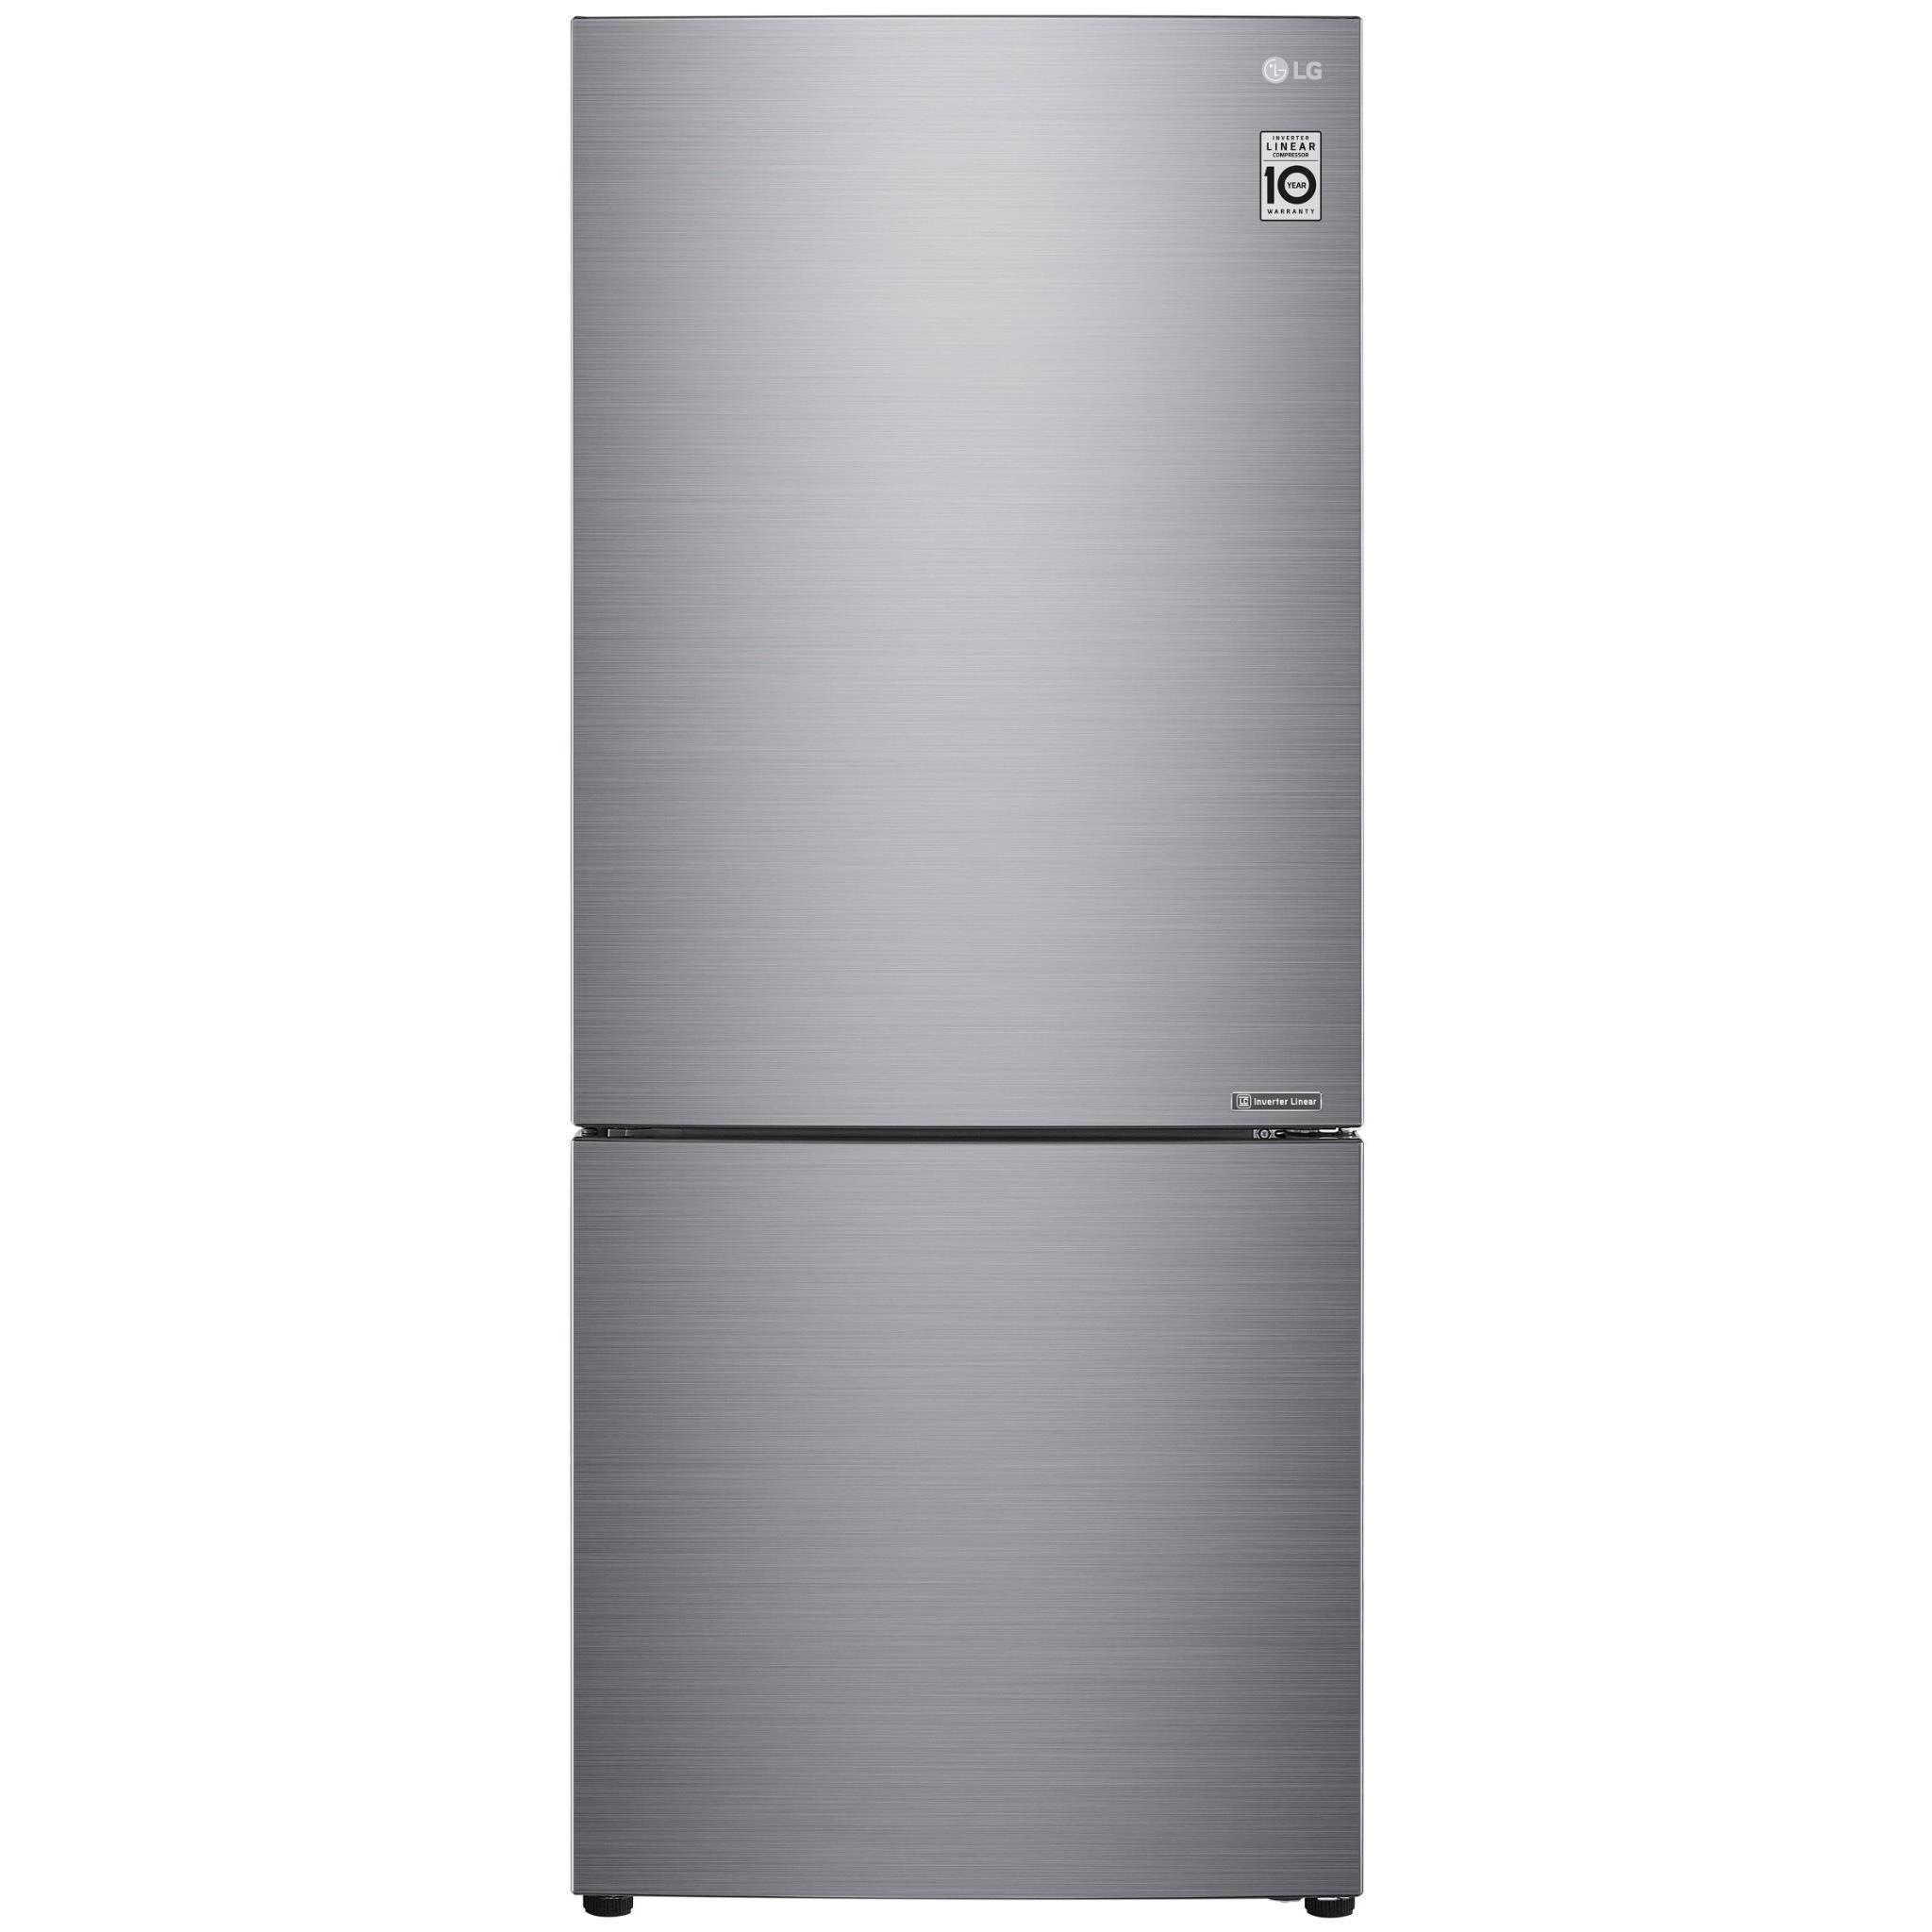 LG GB455PL 454L Bottom Mount Fridge (Stainless Steel)